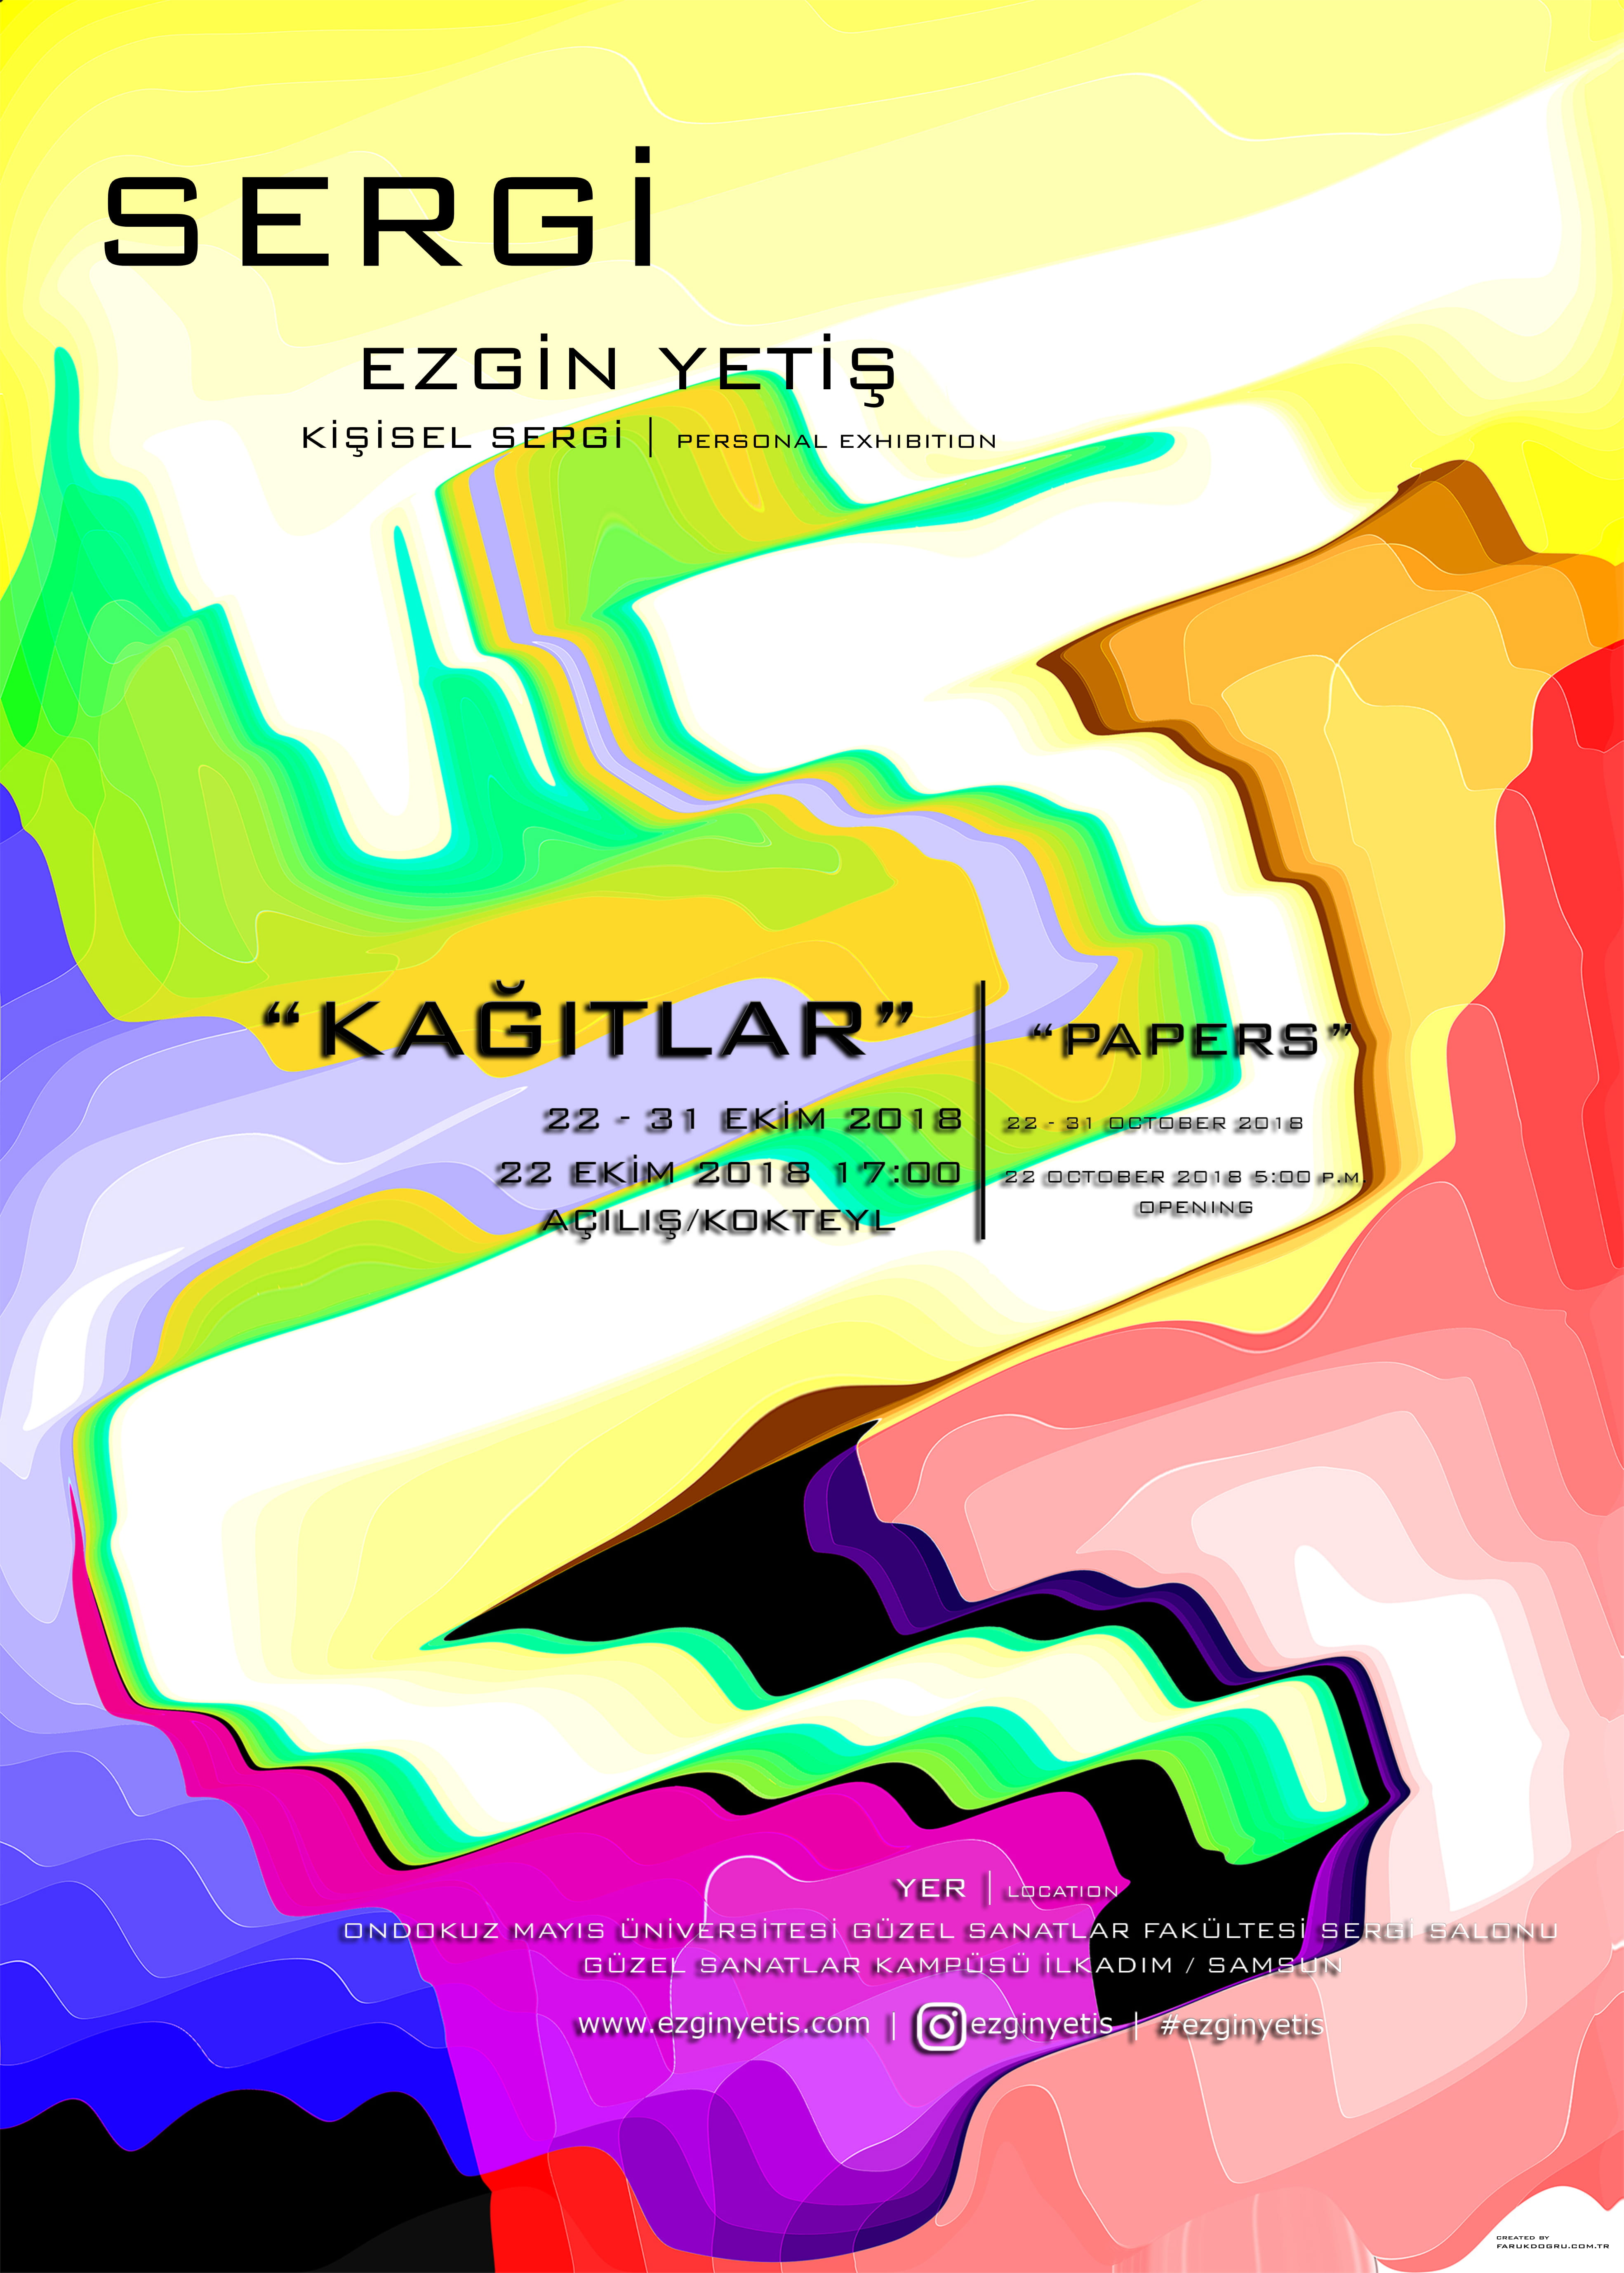 http://www.omu.edu.tr/sites/default/files/ezginyetis_kagitlar_afis-1.jpg